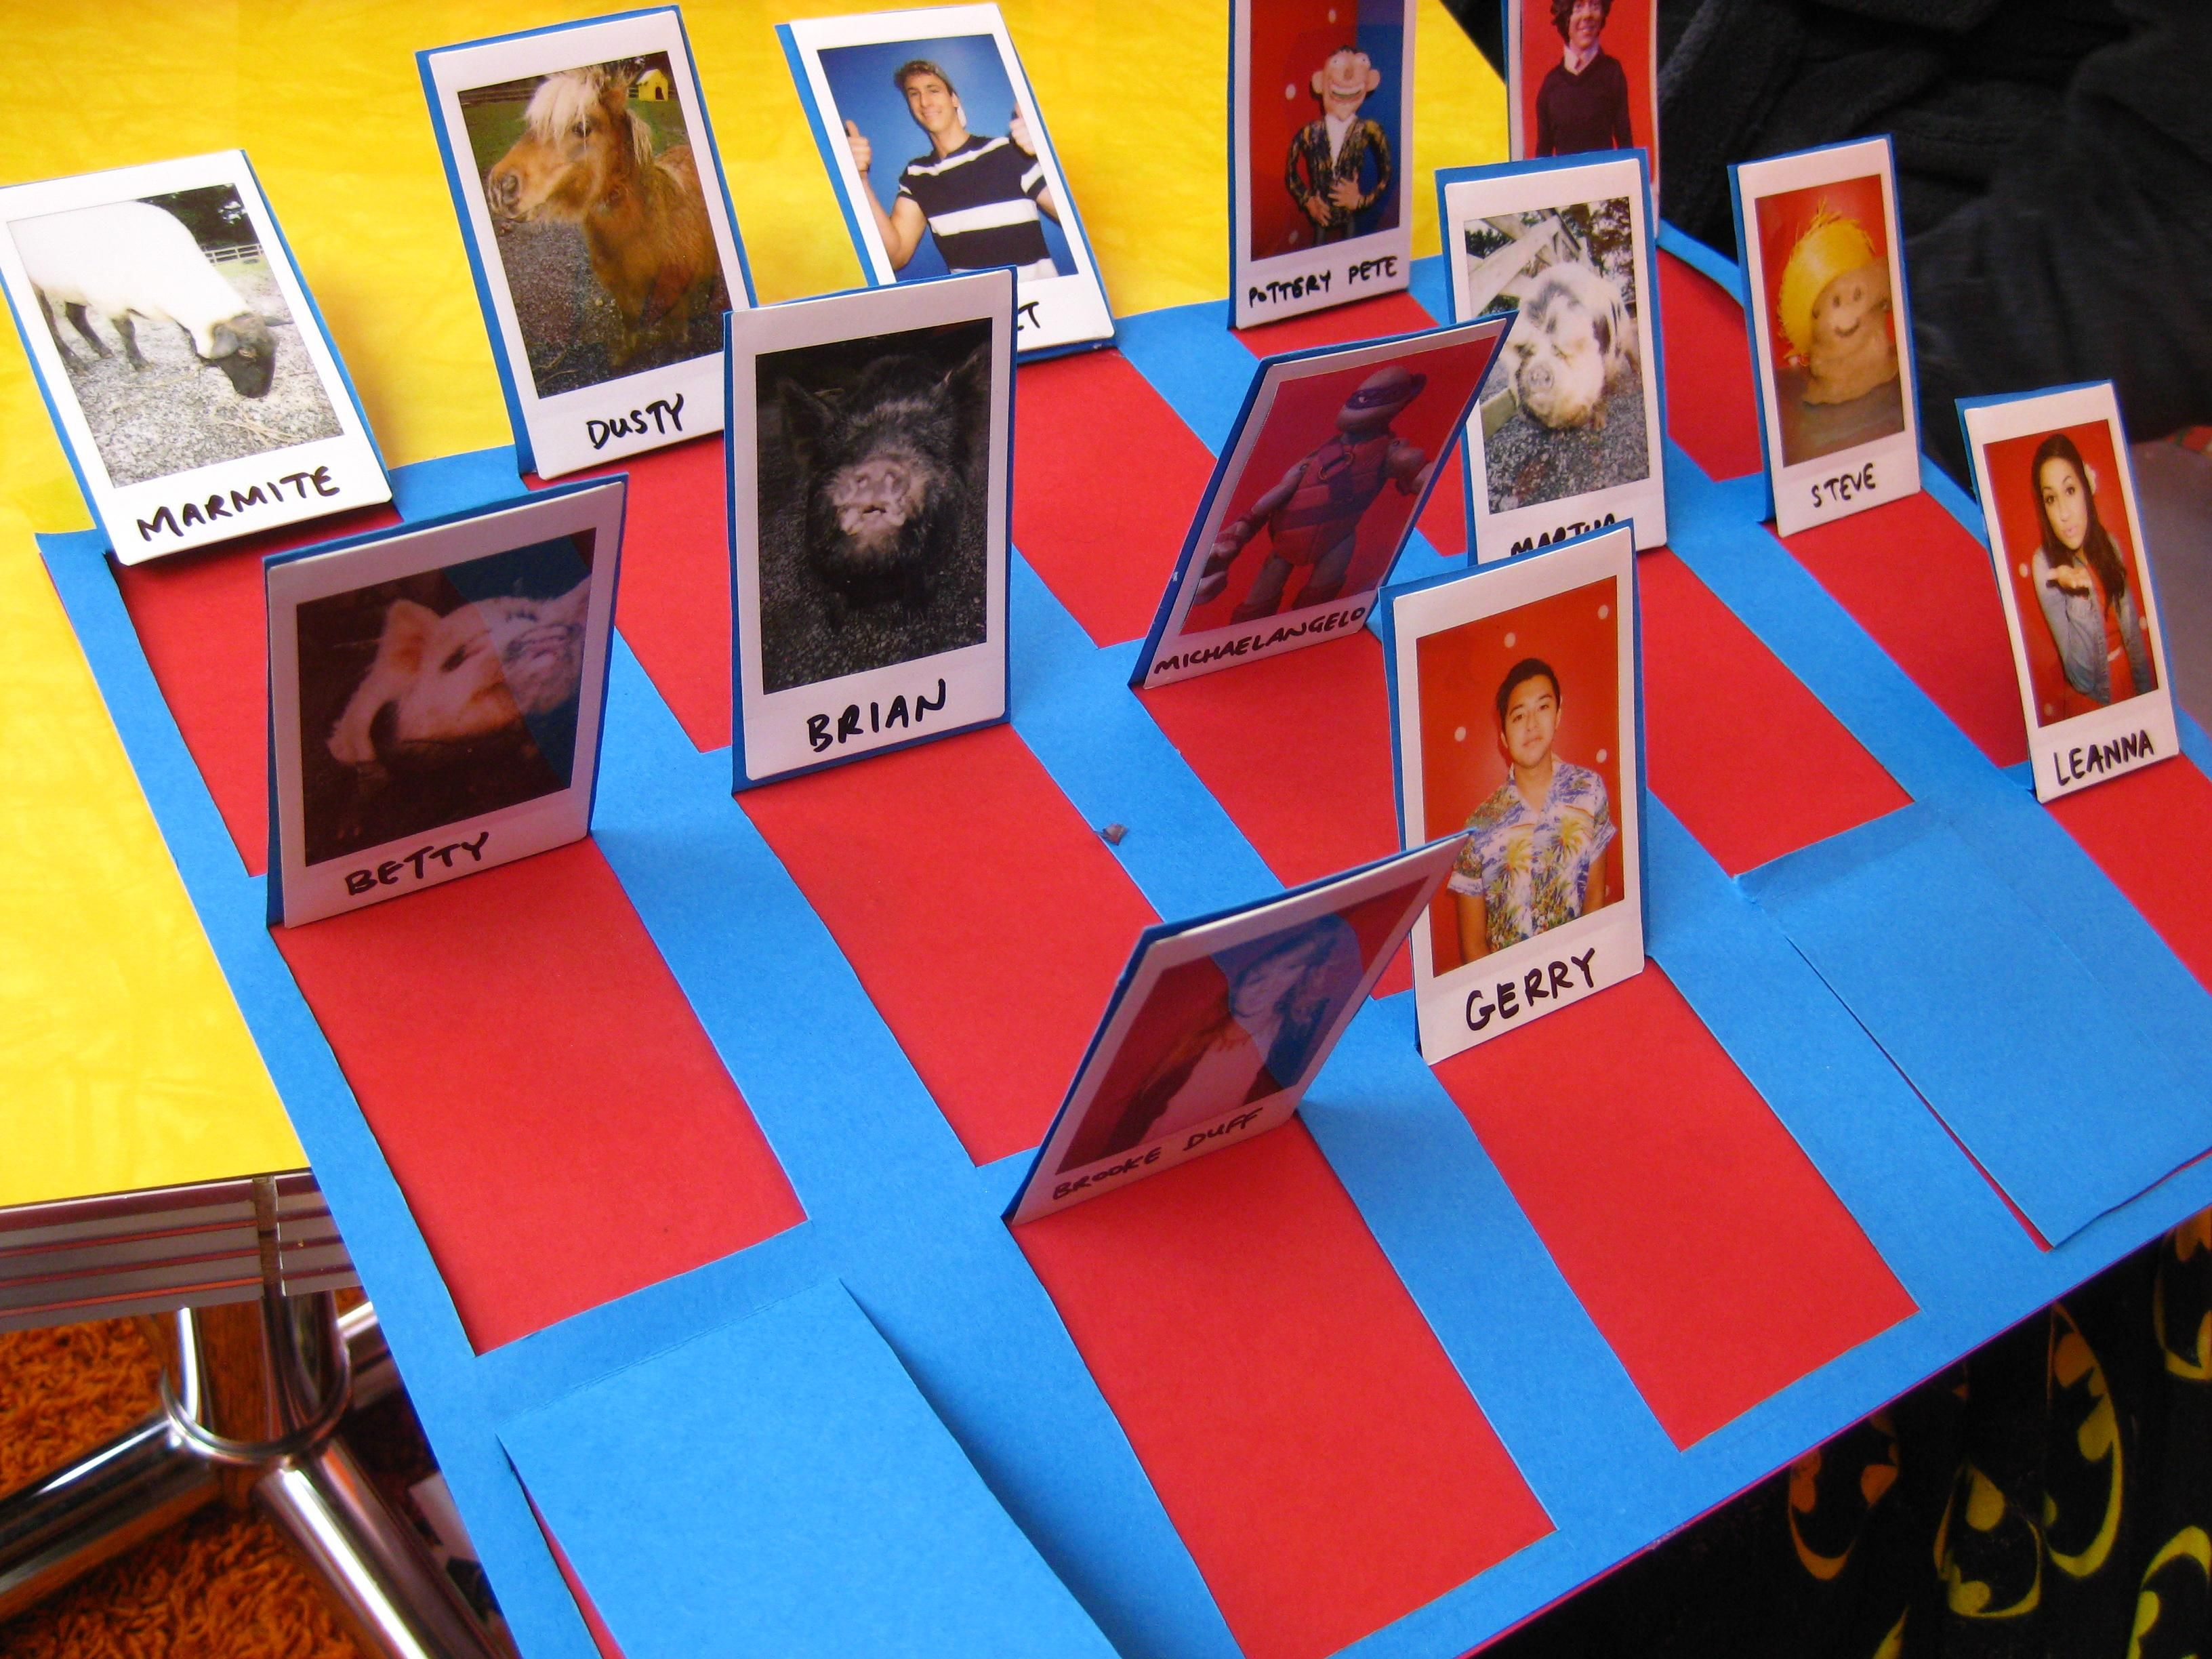 Find all the instructions for the guess who game here and